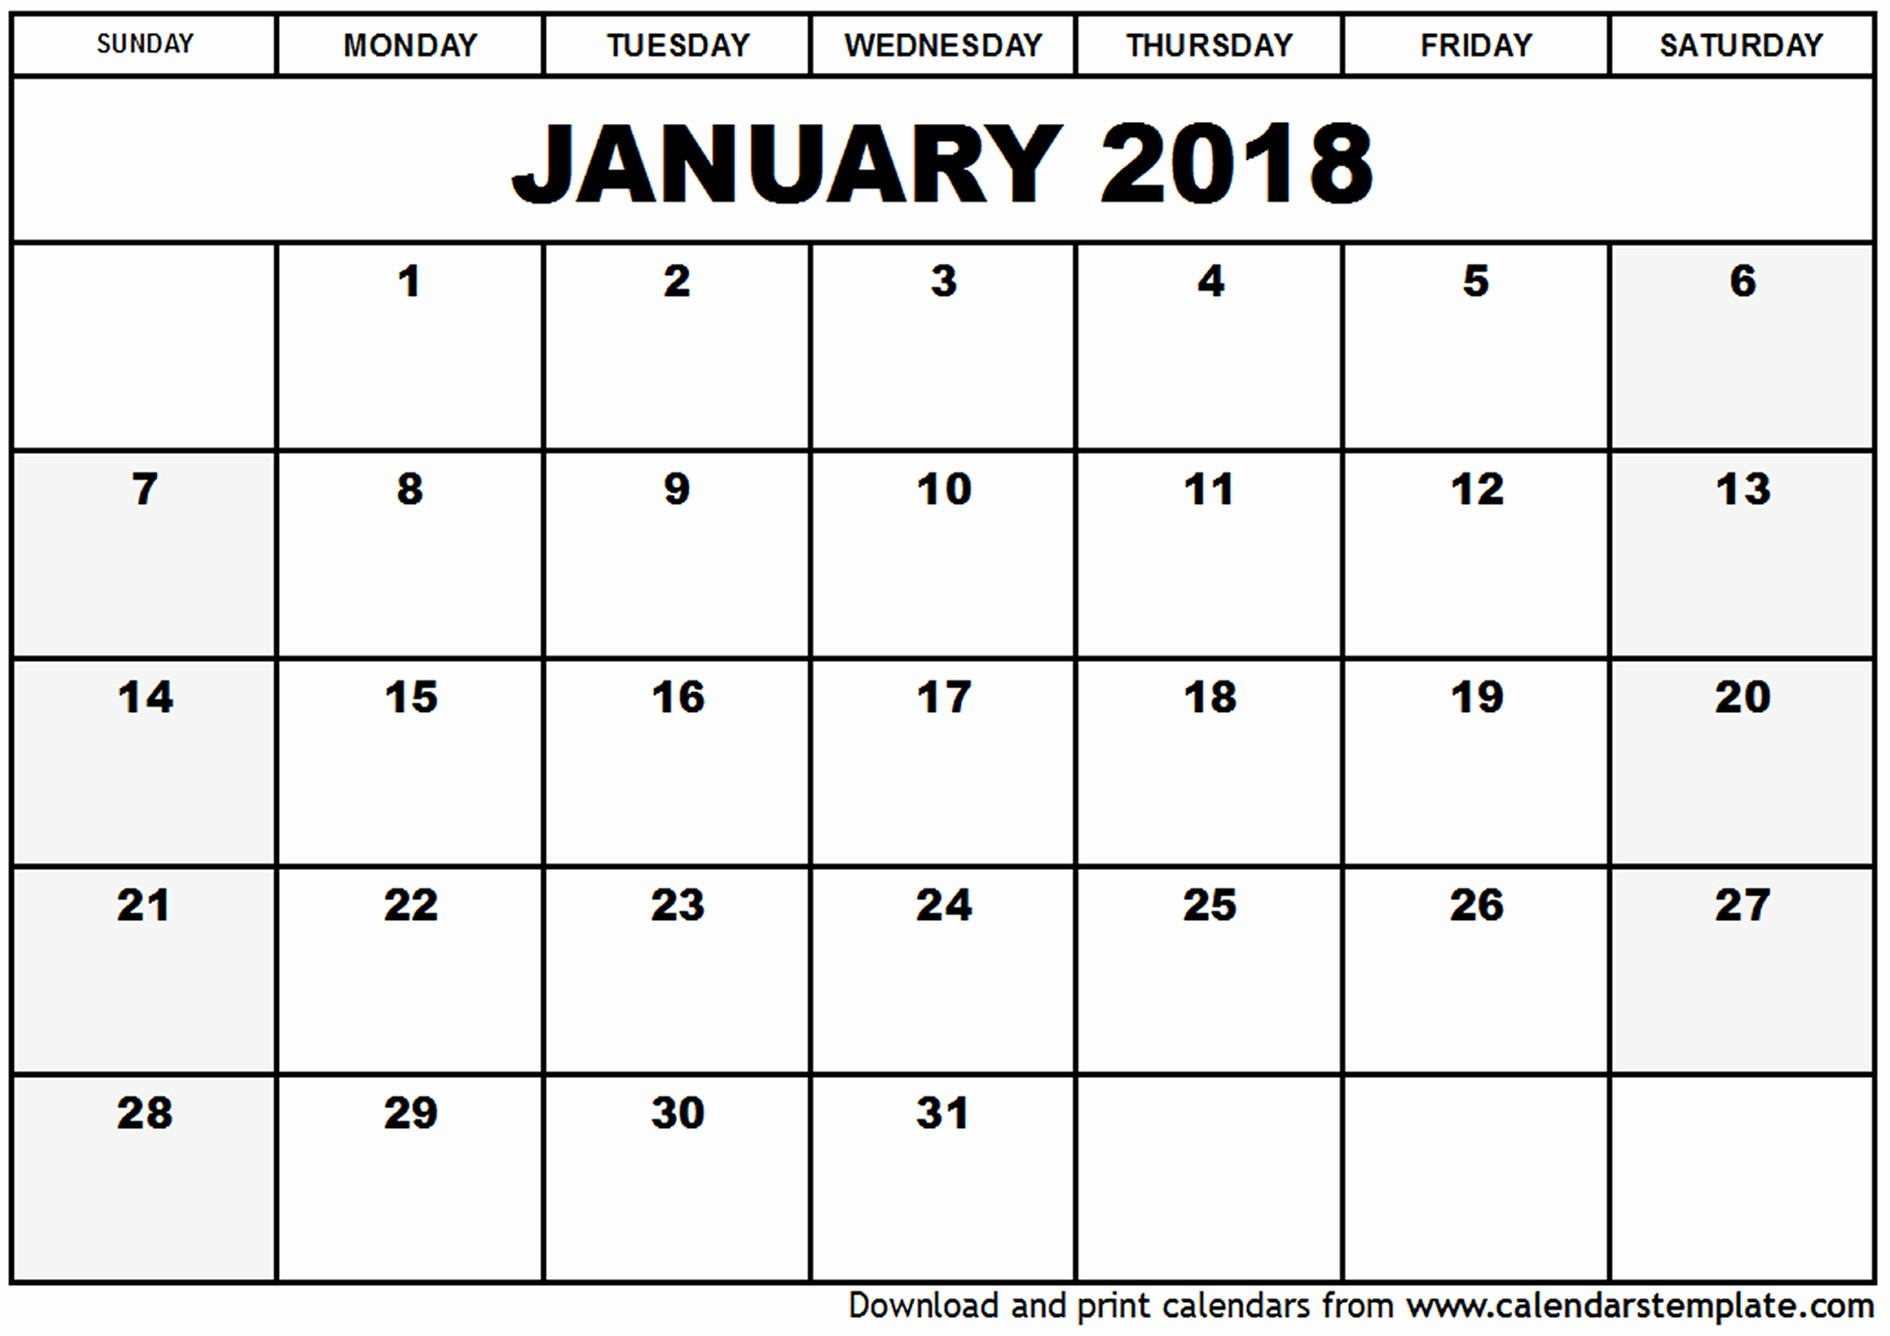 Free Printable 2018 Calendar Templates Inspirational January 2018 Calendar Template